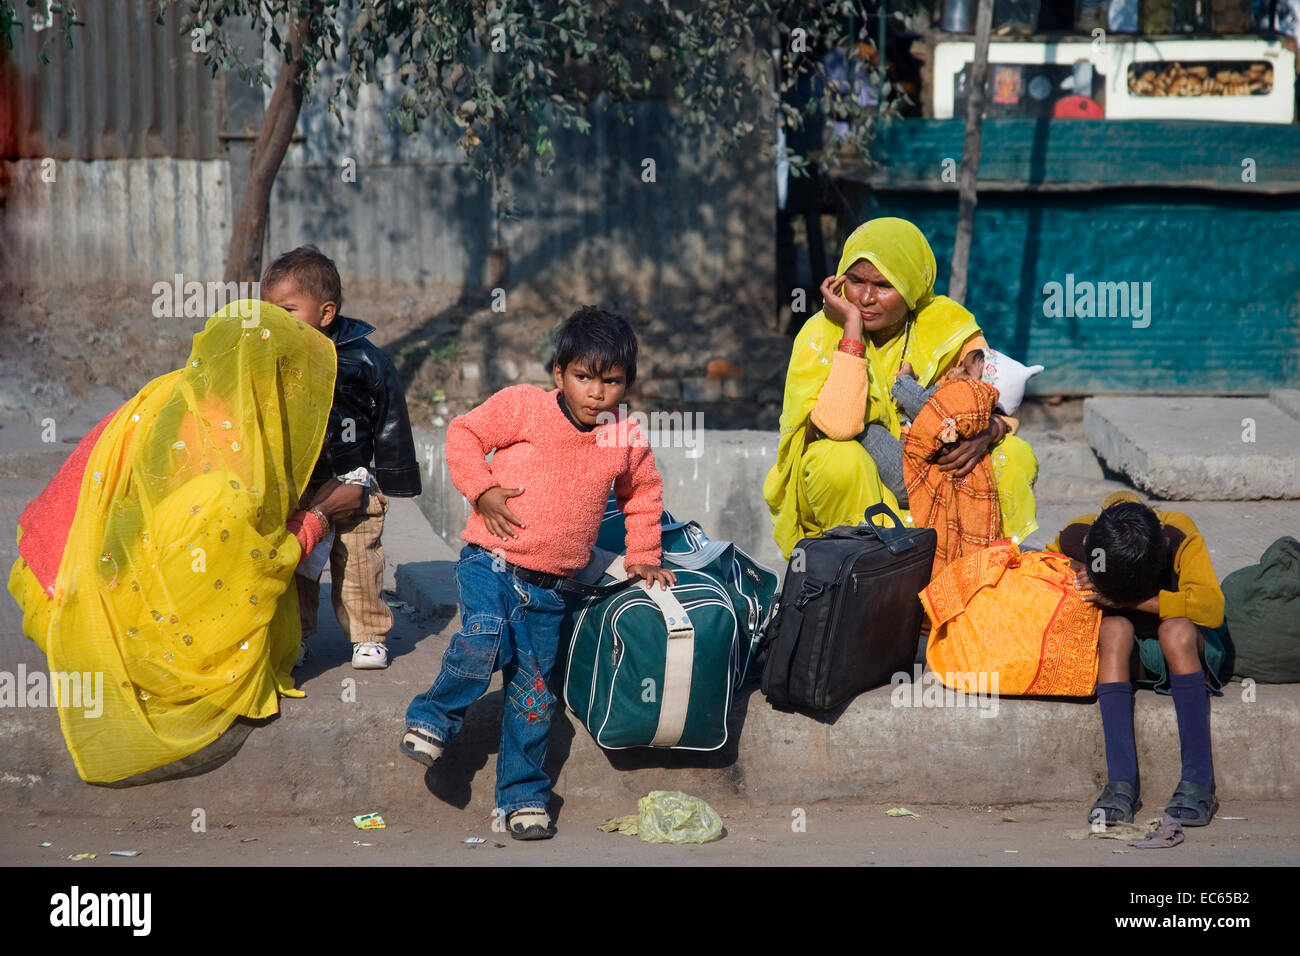 indian woman with childs on the roadside, North India, India, Asia - Stock Image